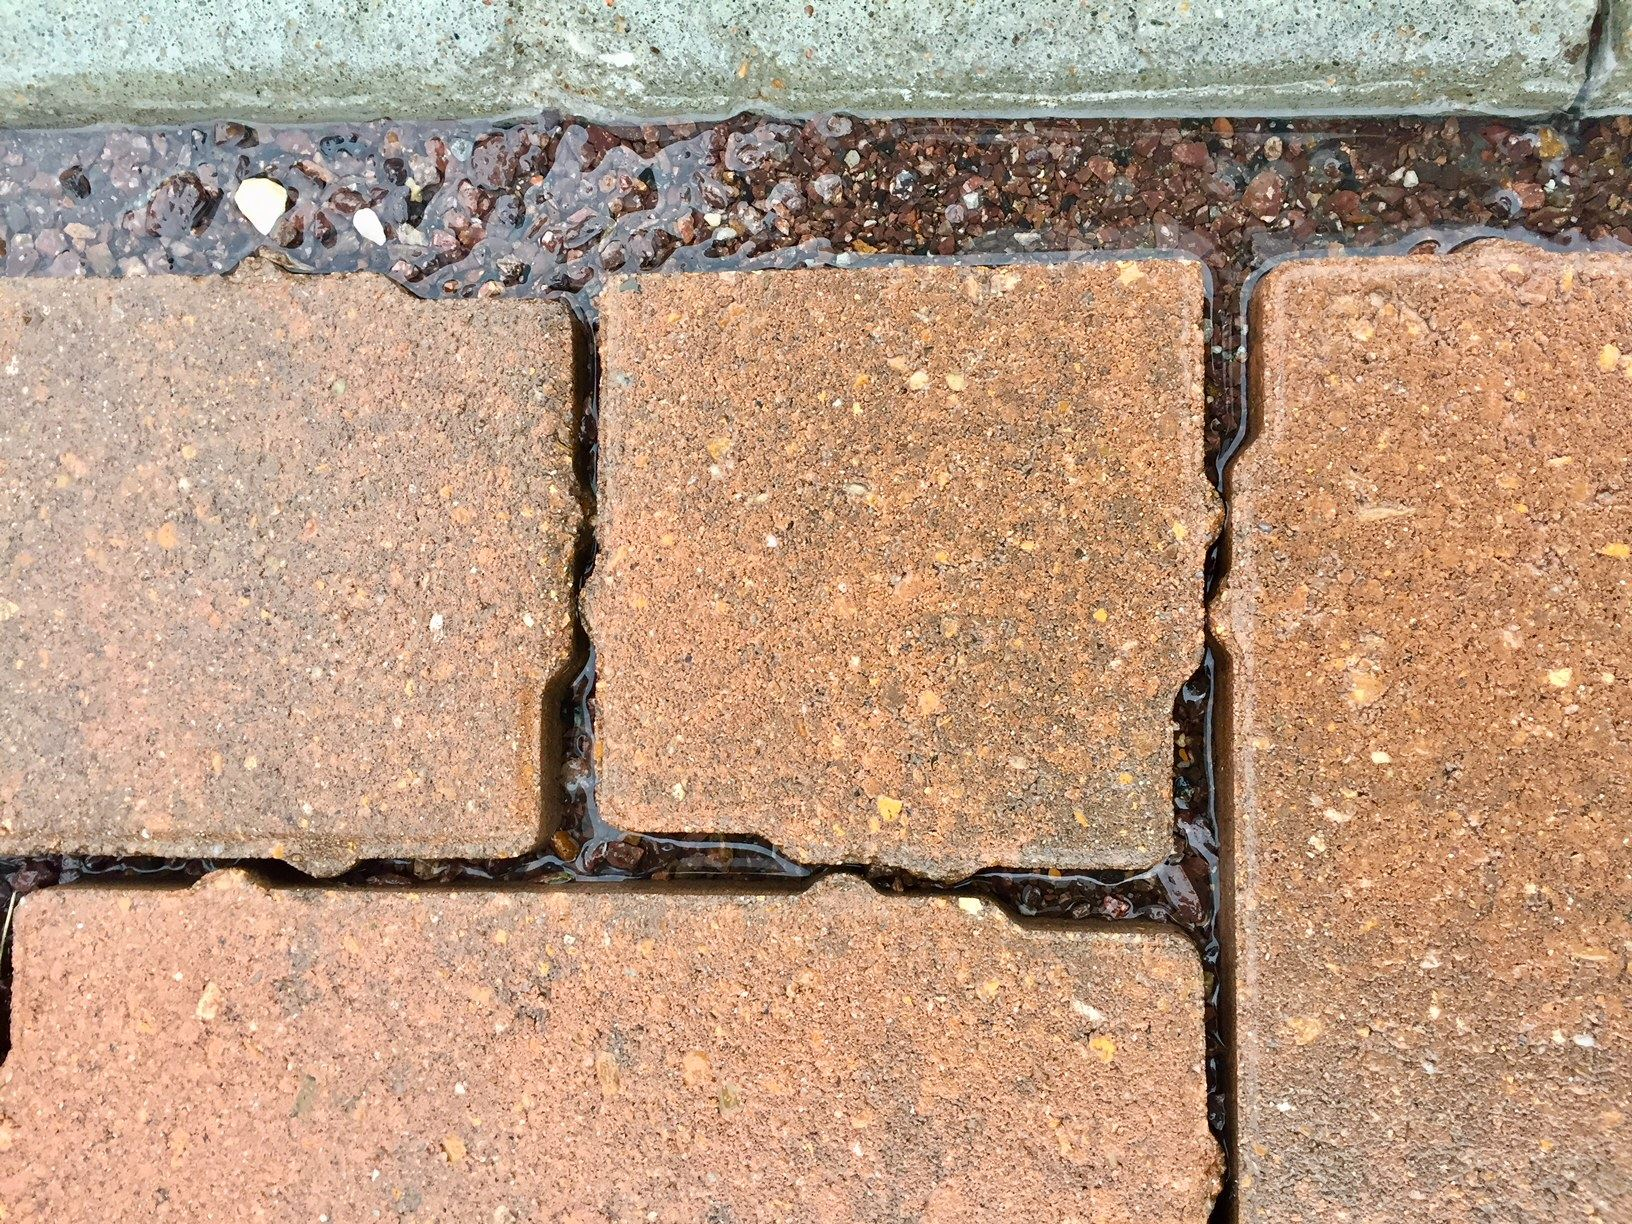 Stormwater_Brick_Paver_City_Center_2018_08_15